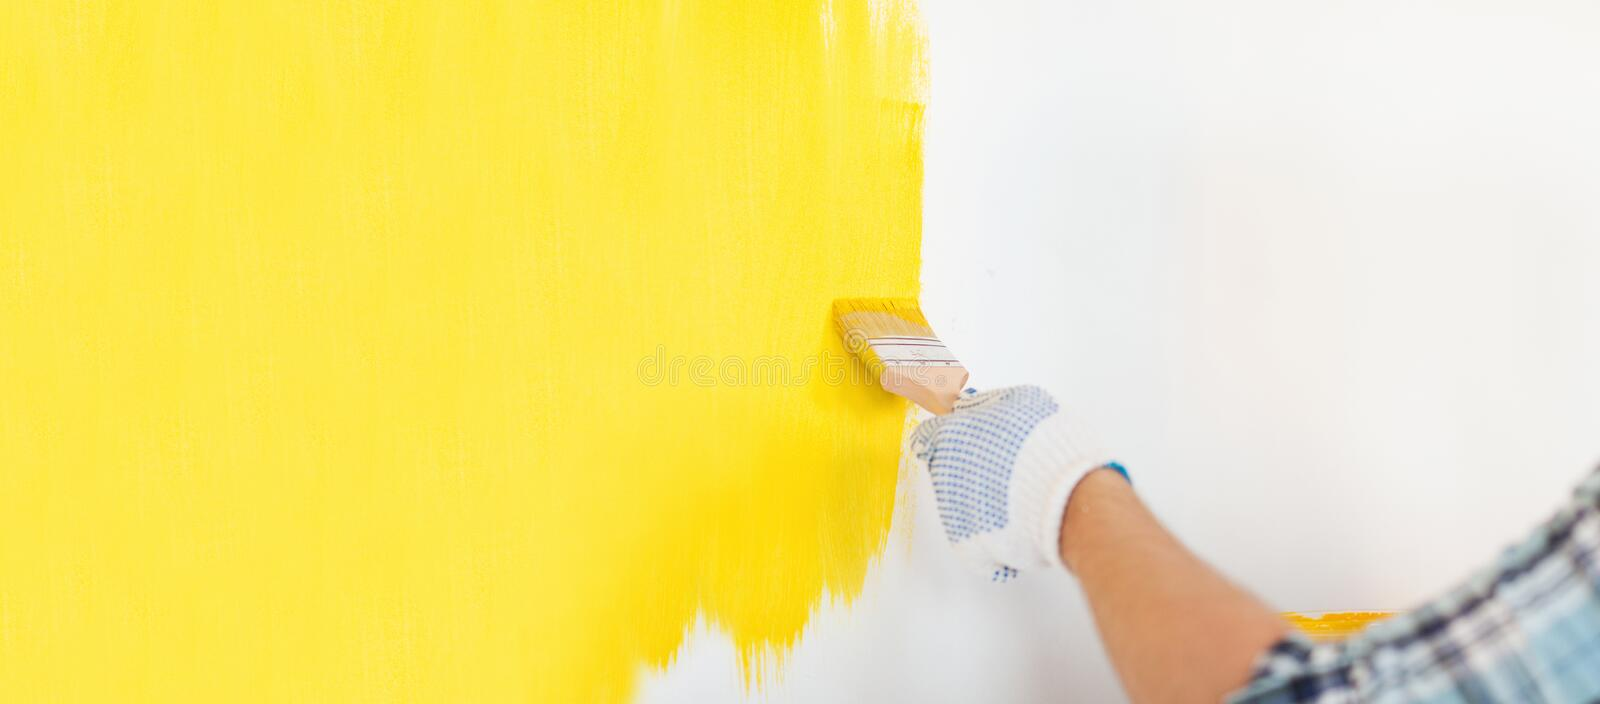 Close Up Of Male In Gloves Painting A Wall Stock Image - Image of ...